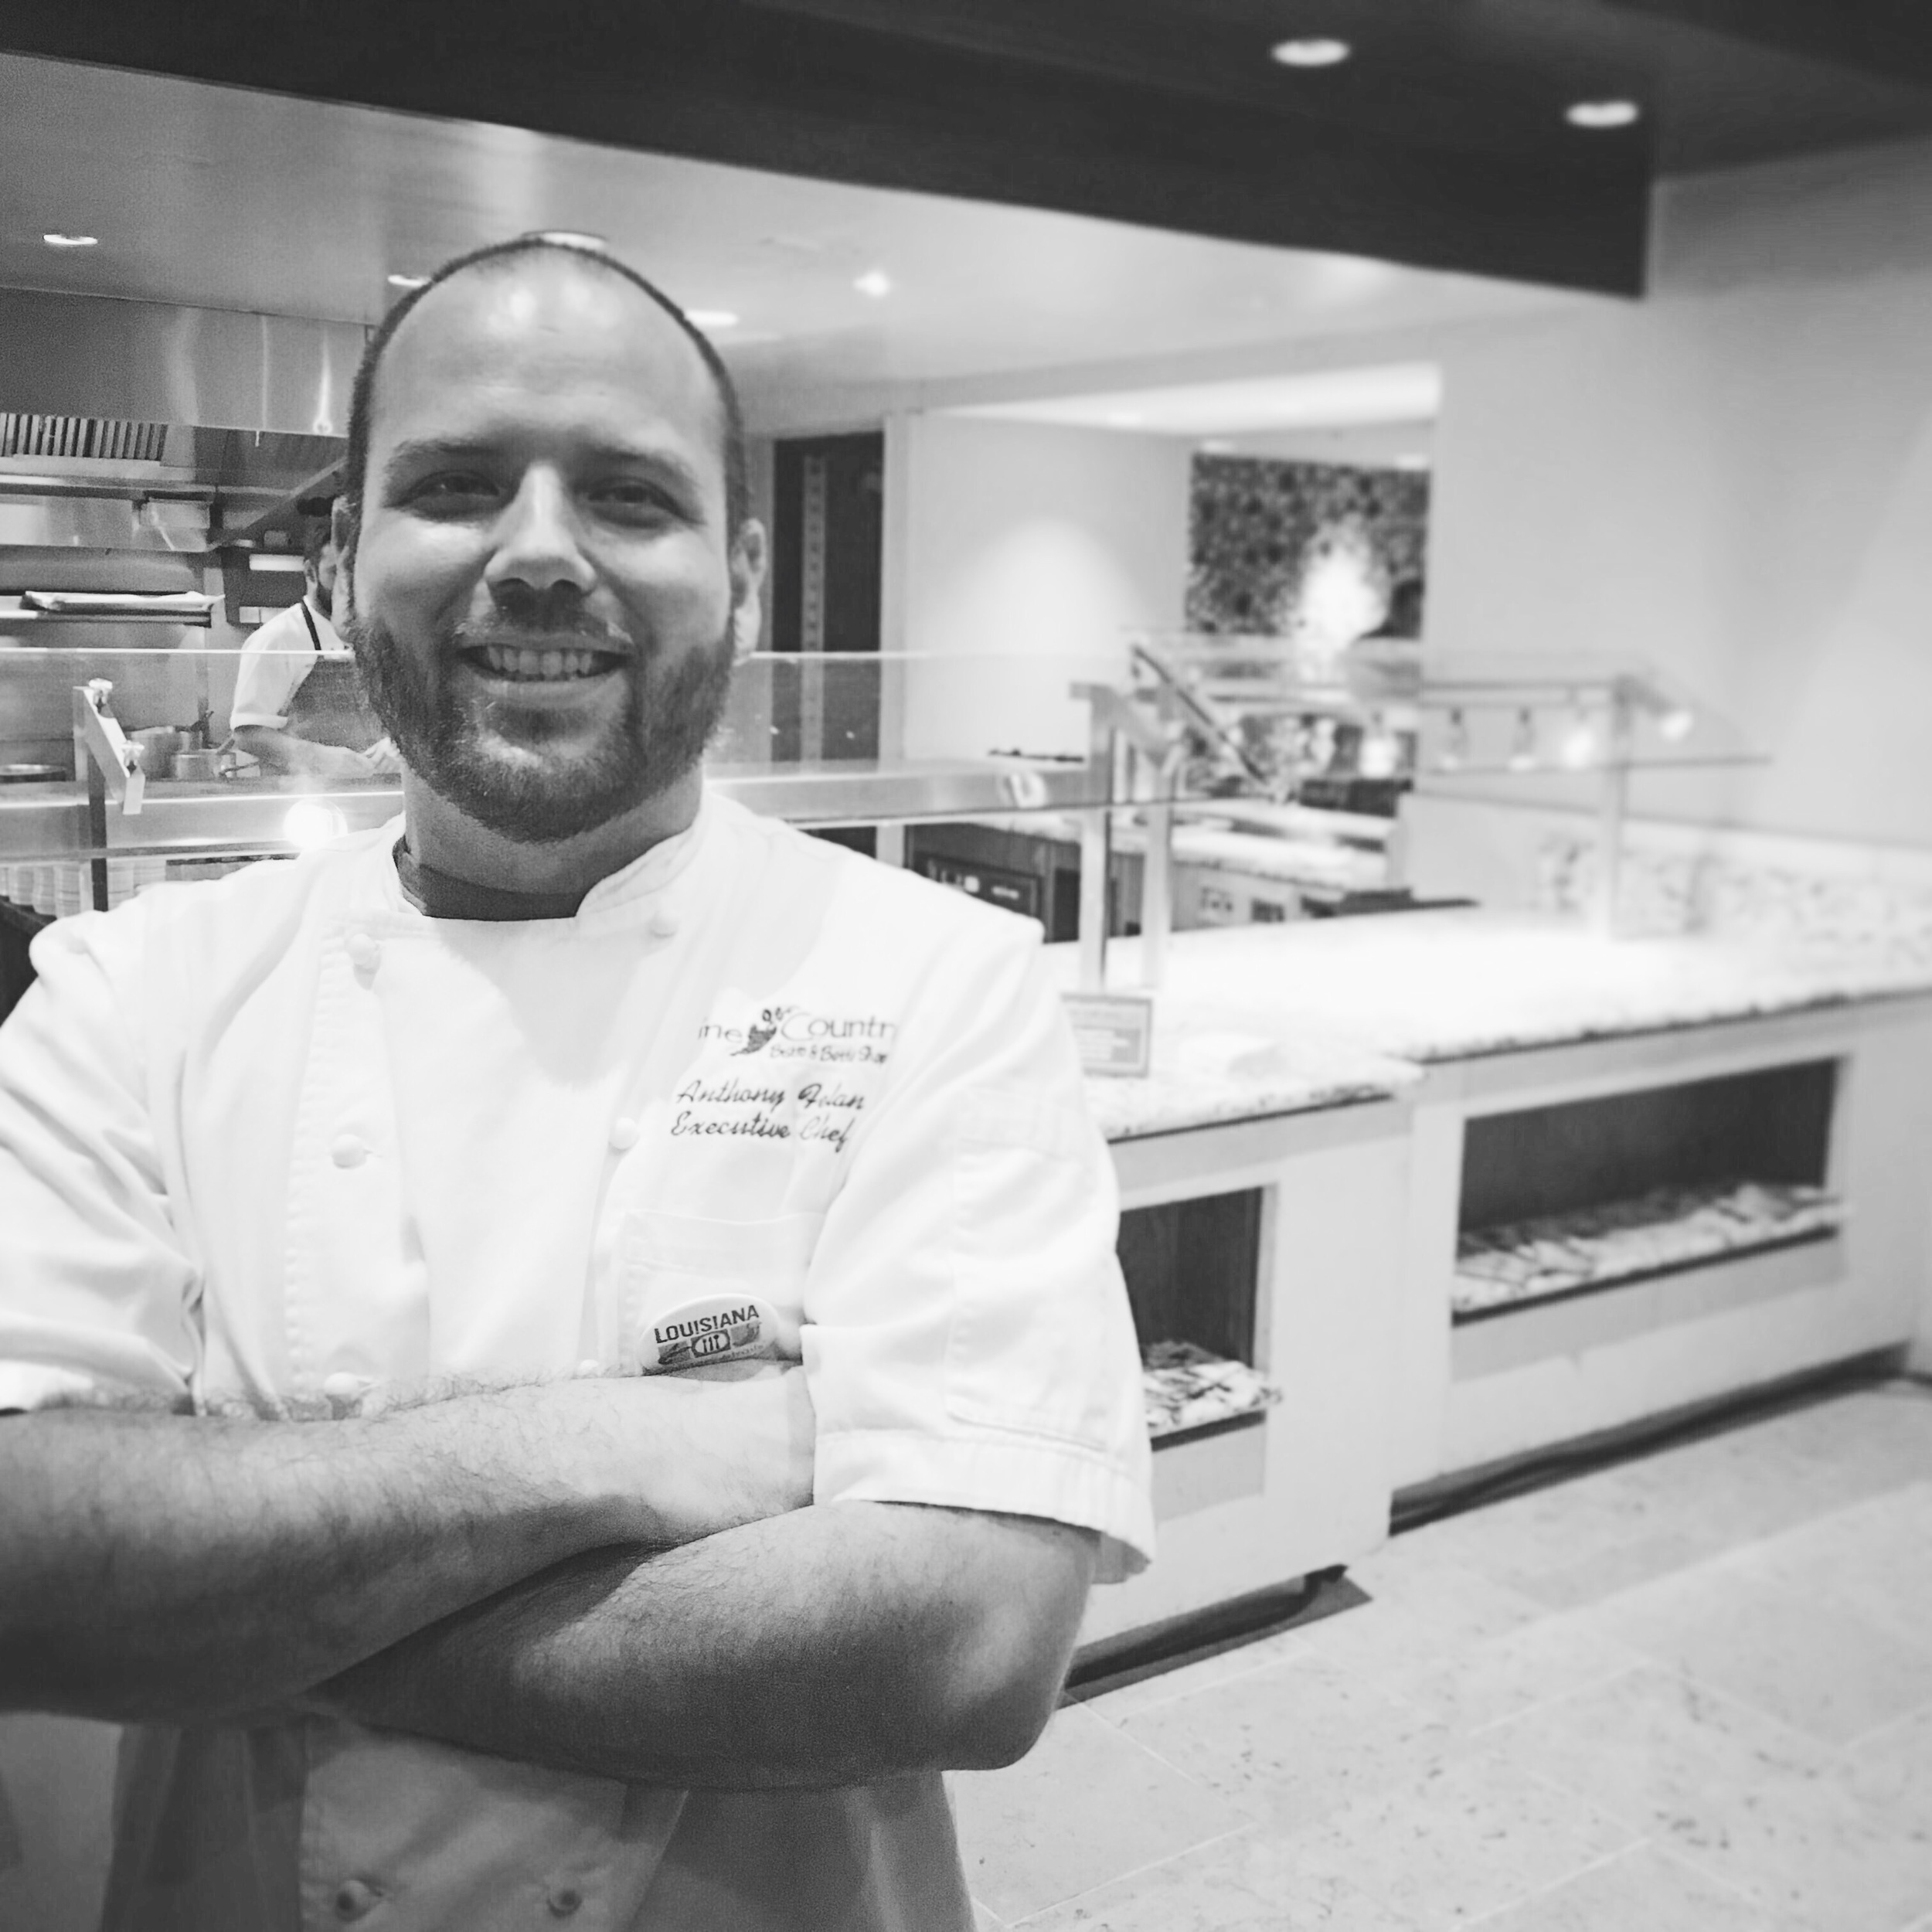 Chef Anthony Felan of  Wine Country Bistro & Bottle Shop  in Shreveport, Lousiana.  He'll be partnering with Chef Christopher Wilson at The Carillon inside the AT&T Center on UT's Campus here in Austin for Louisiana-LoneStar.